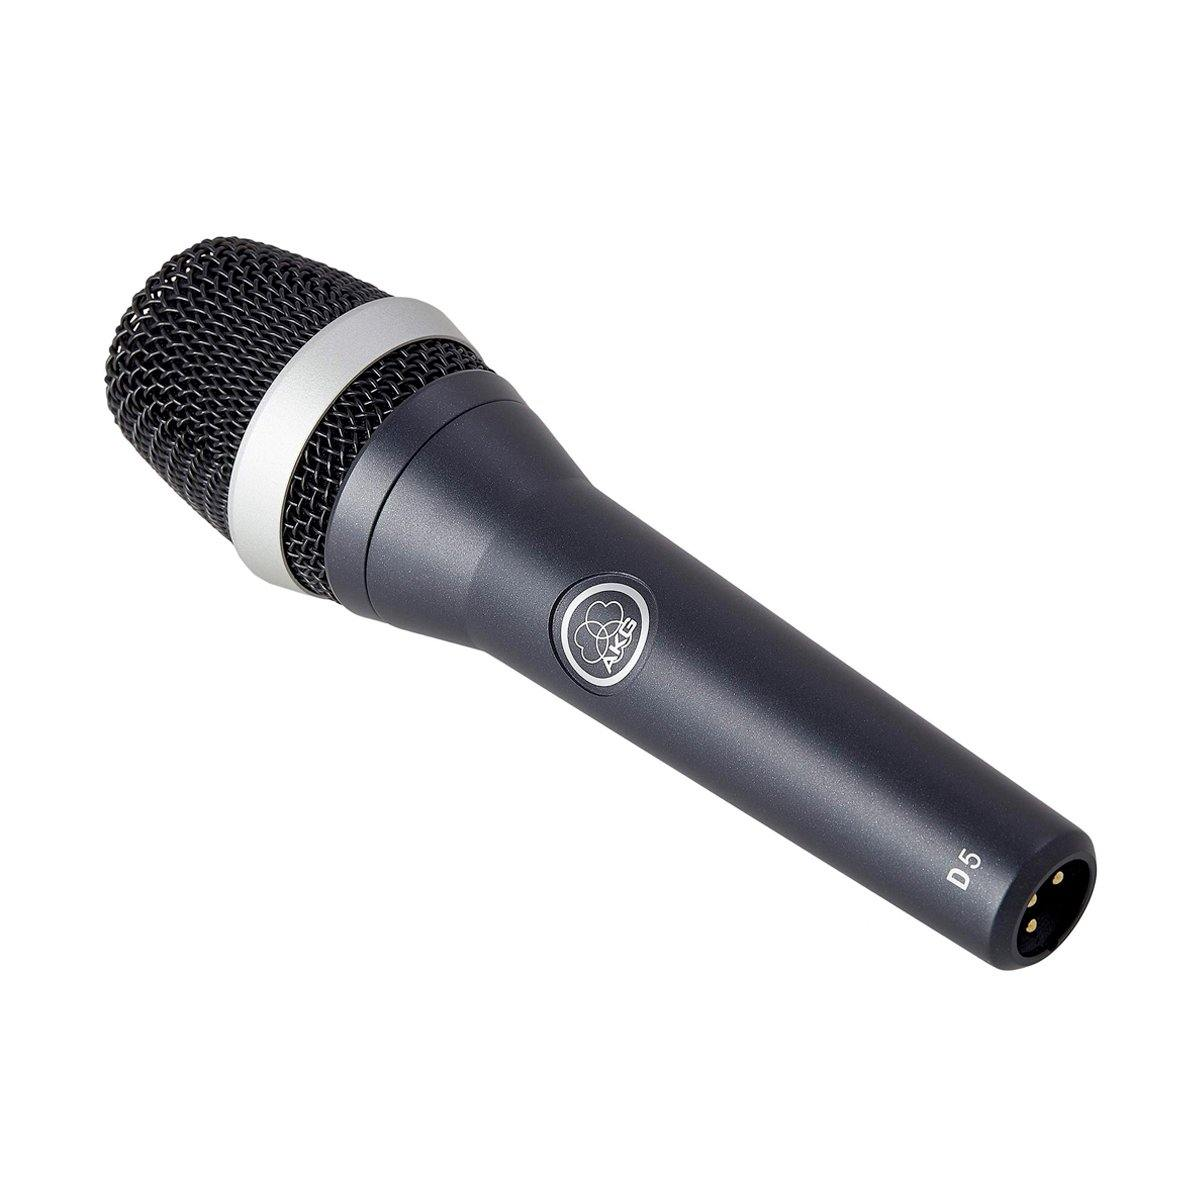 AKG D5 Professional Dynamic Sudercardioid Vocal Microphone - ICONS Shop